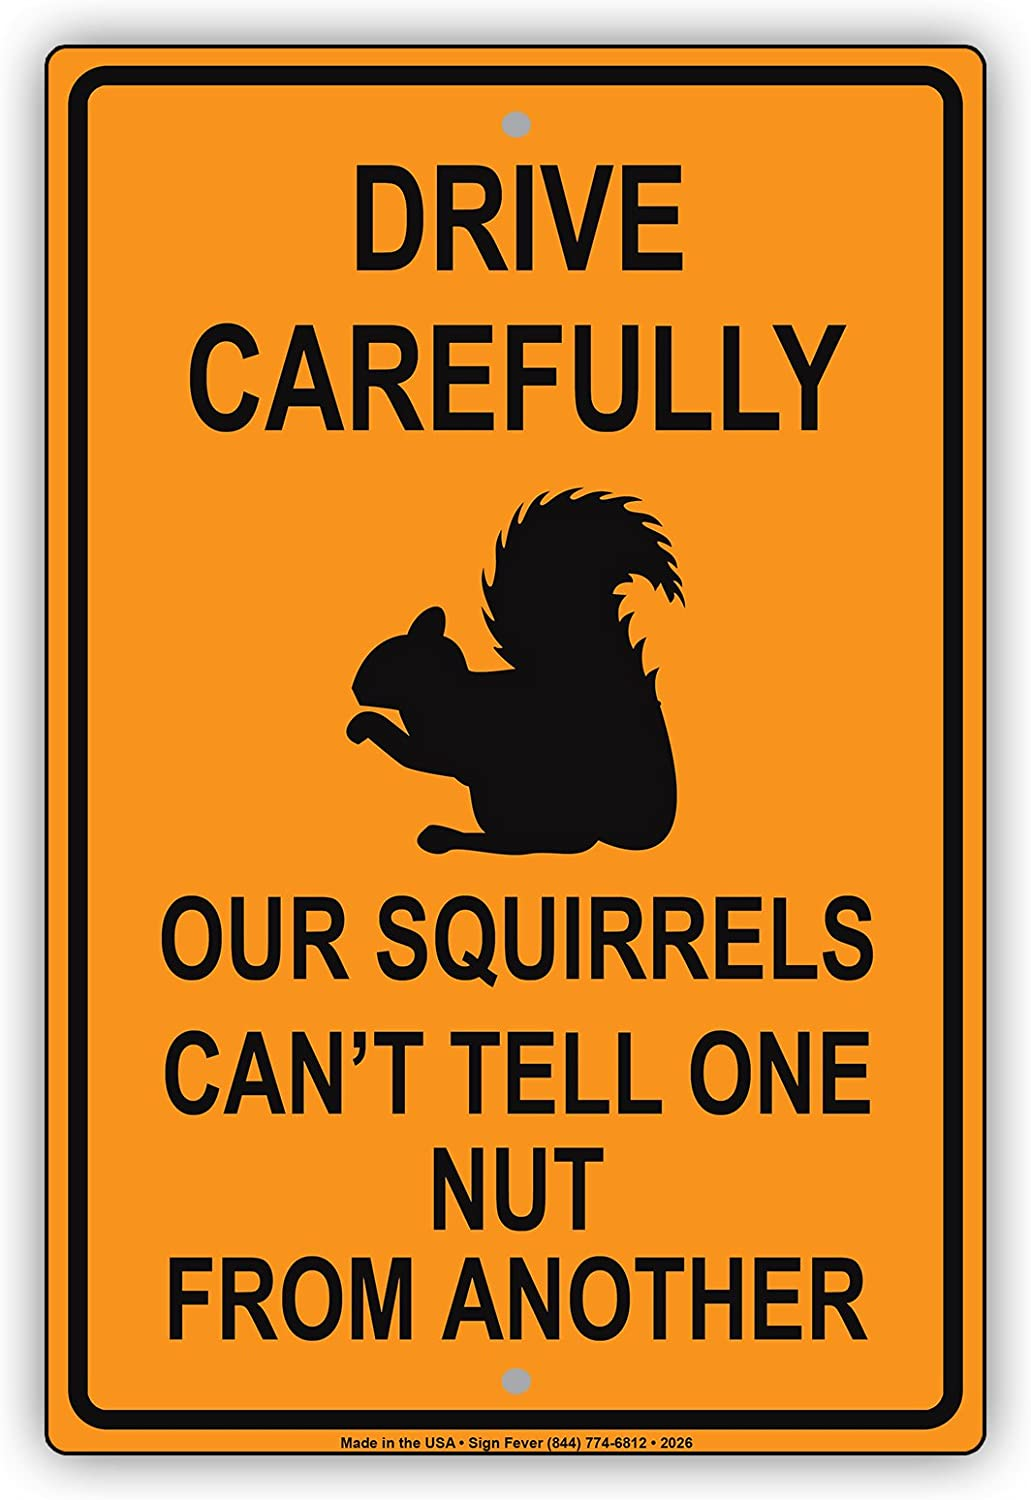 Drive trend rank Carefully Our Squirrels Can't Tell Another One from Spasm price Nut Hu